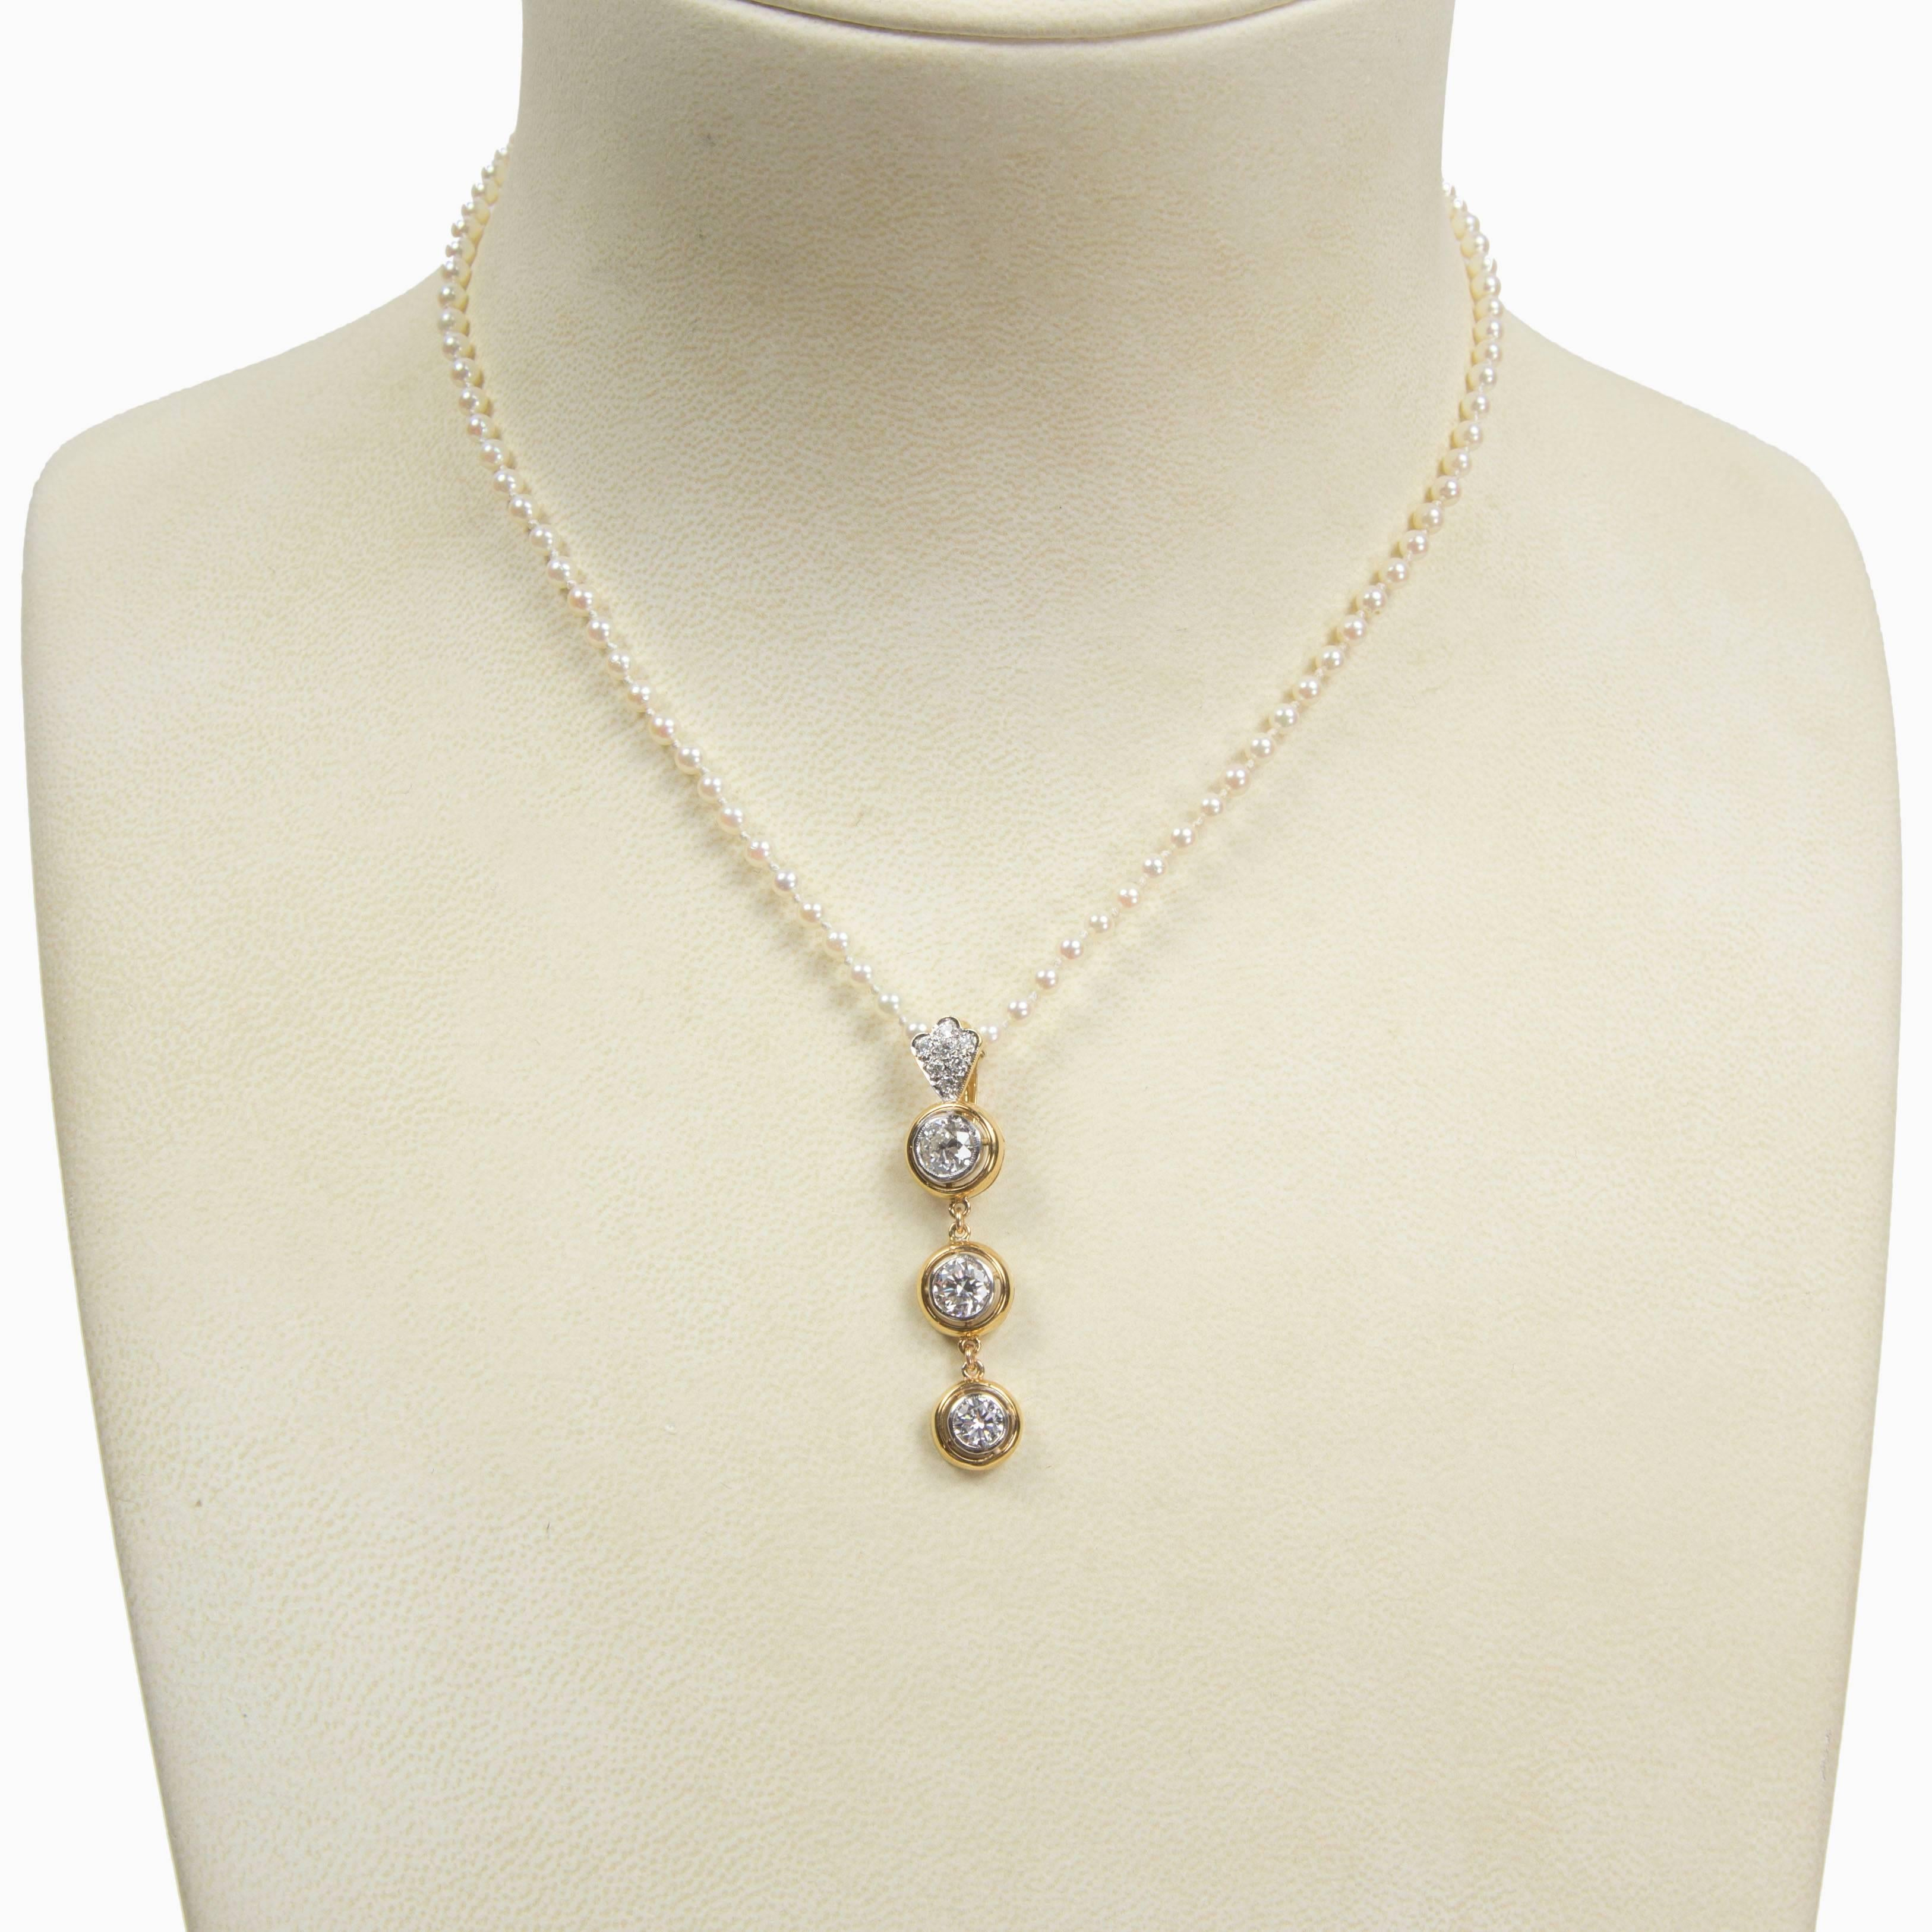 160c134d9 Beautiful Diamond Gold Drop Pendant and Pearl Necklace For Sale at 1stdibs